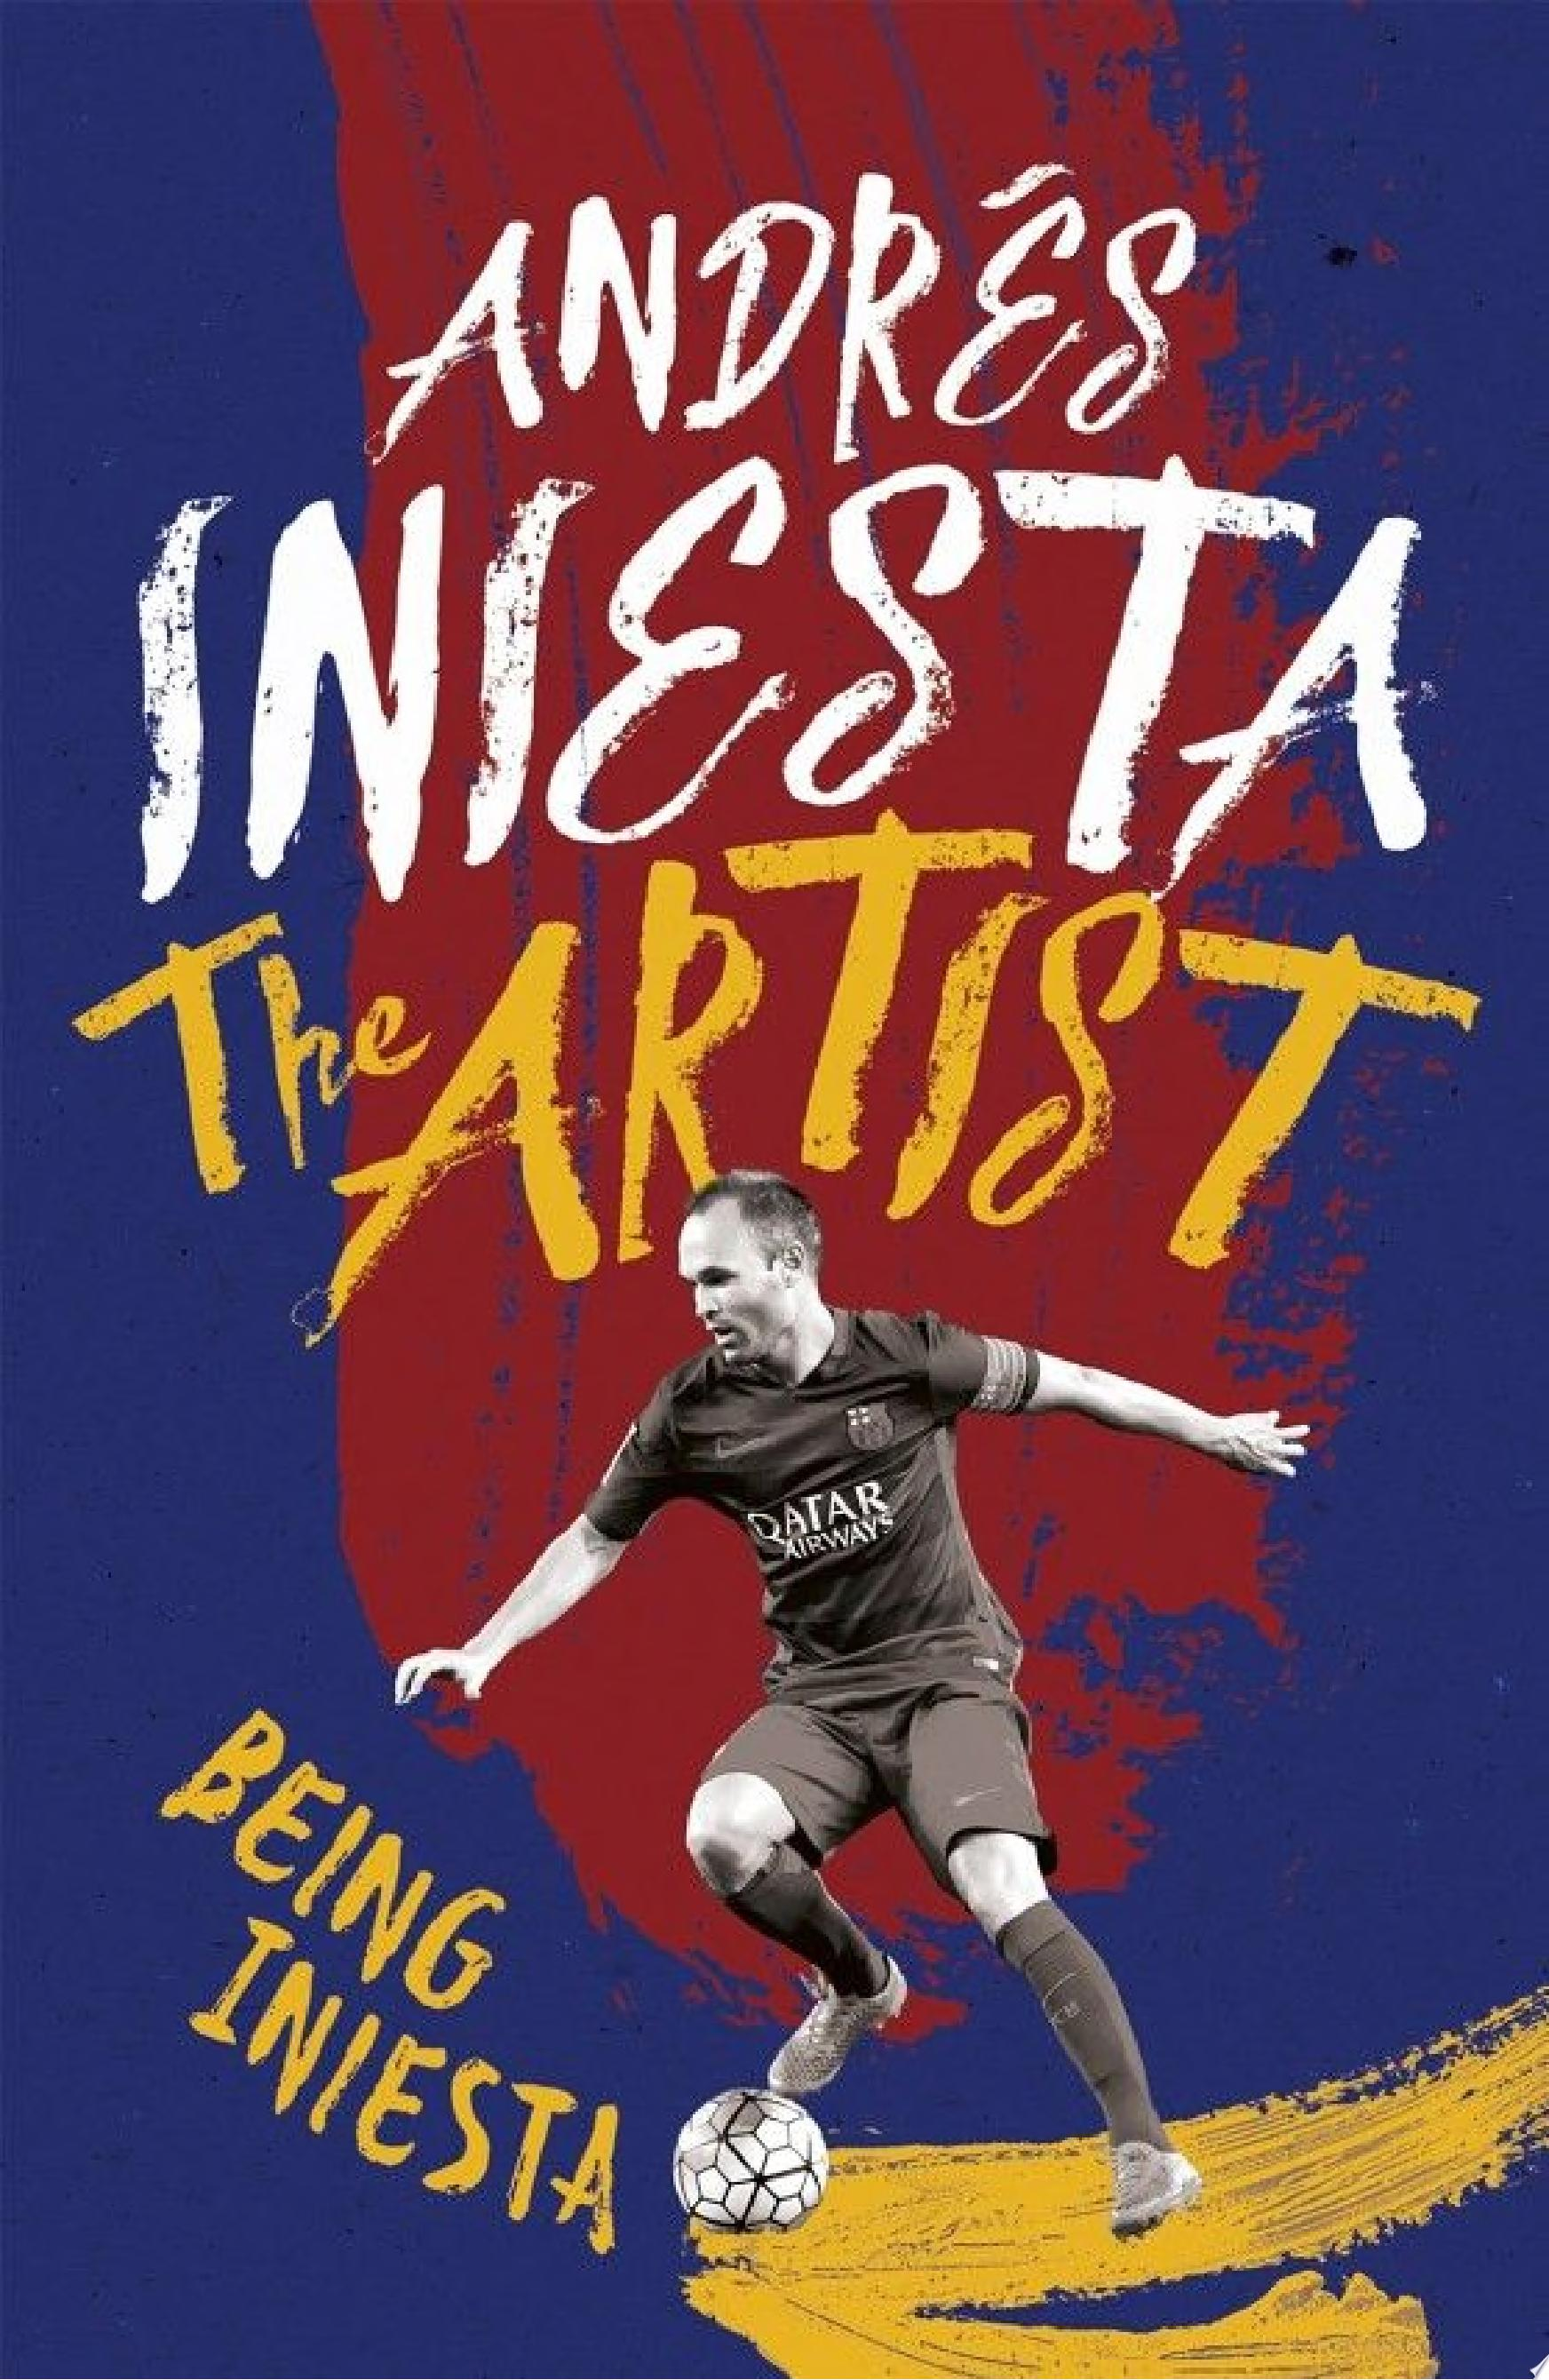 The Artist  Being Iniesta